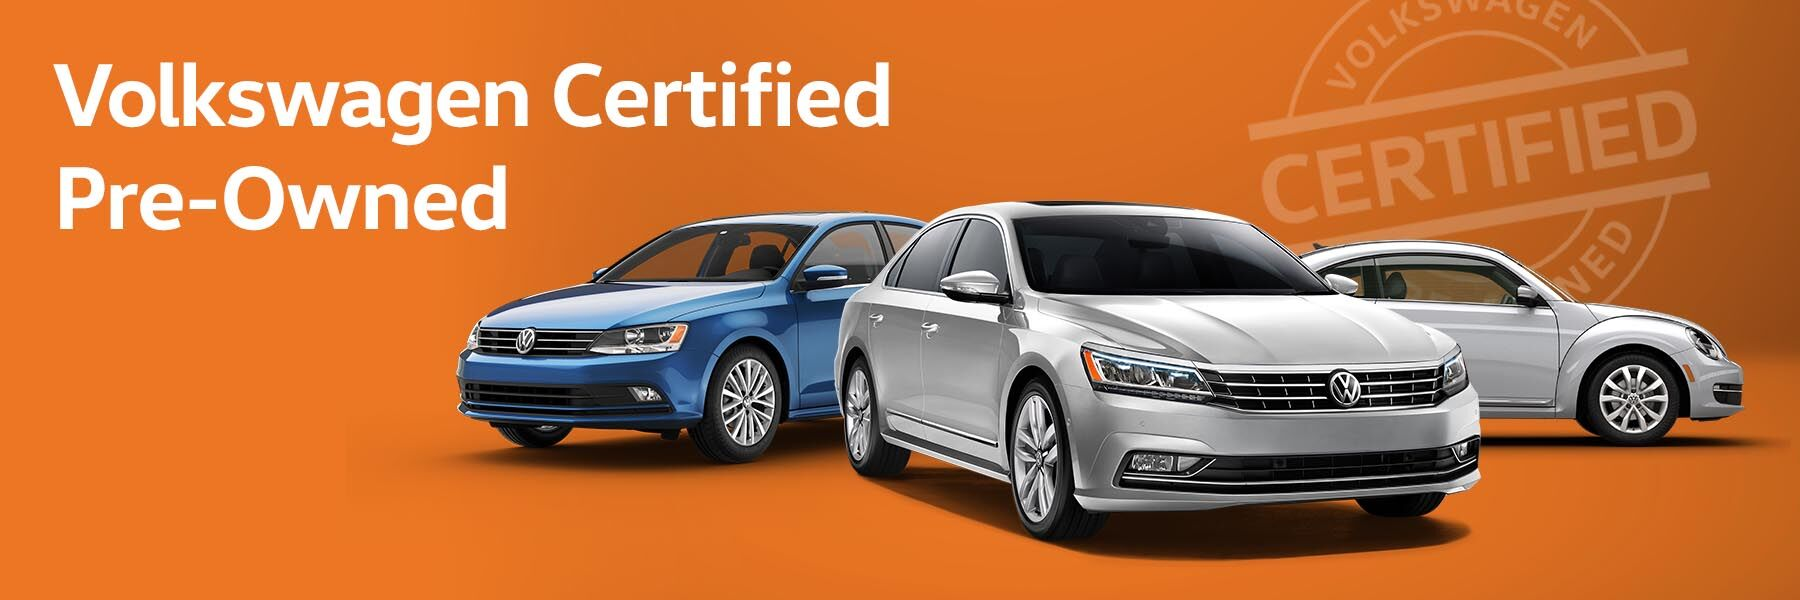 Volkswagen Certified Pre-Owned in Midland, TX